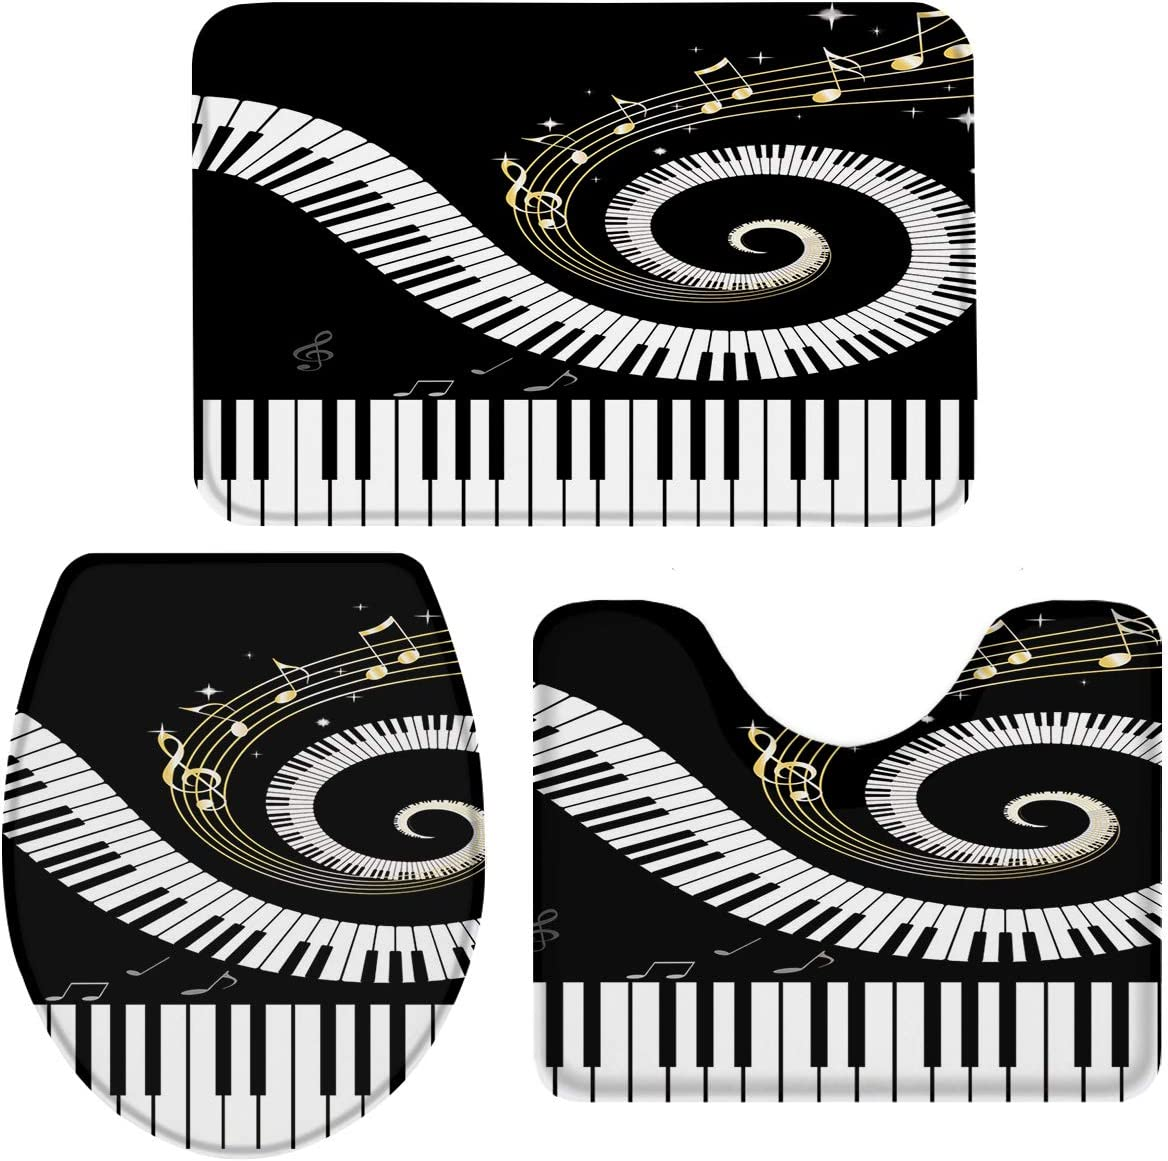 We OFFer at Free shipping anywhere in the nation cheap prices Large 3-Piece Bath Rug and Mat Musical Non-Slip Sets Bathr Note